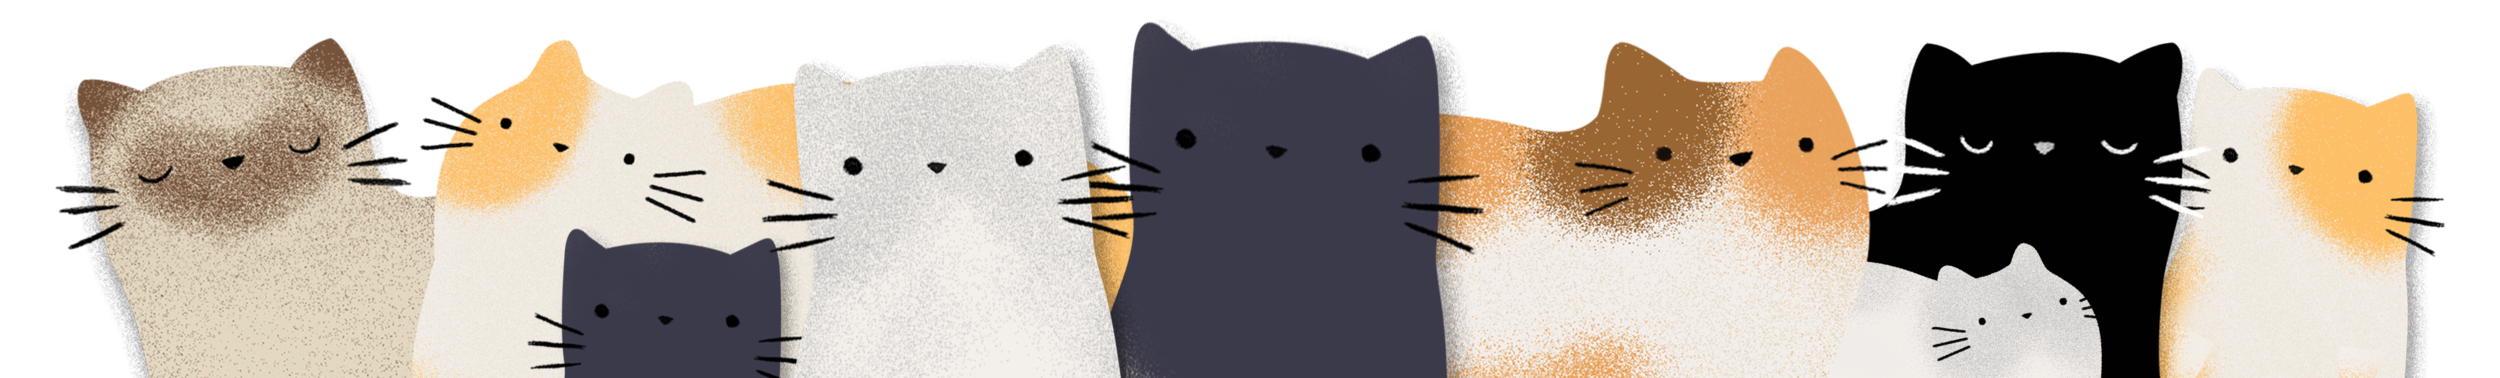 This is a banner image with lots of illustrated cats in a minimalist style.